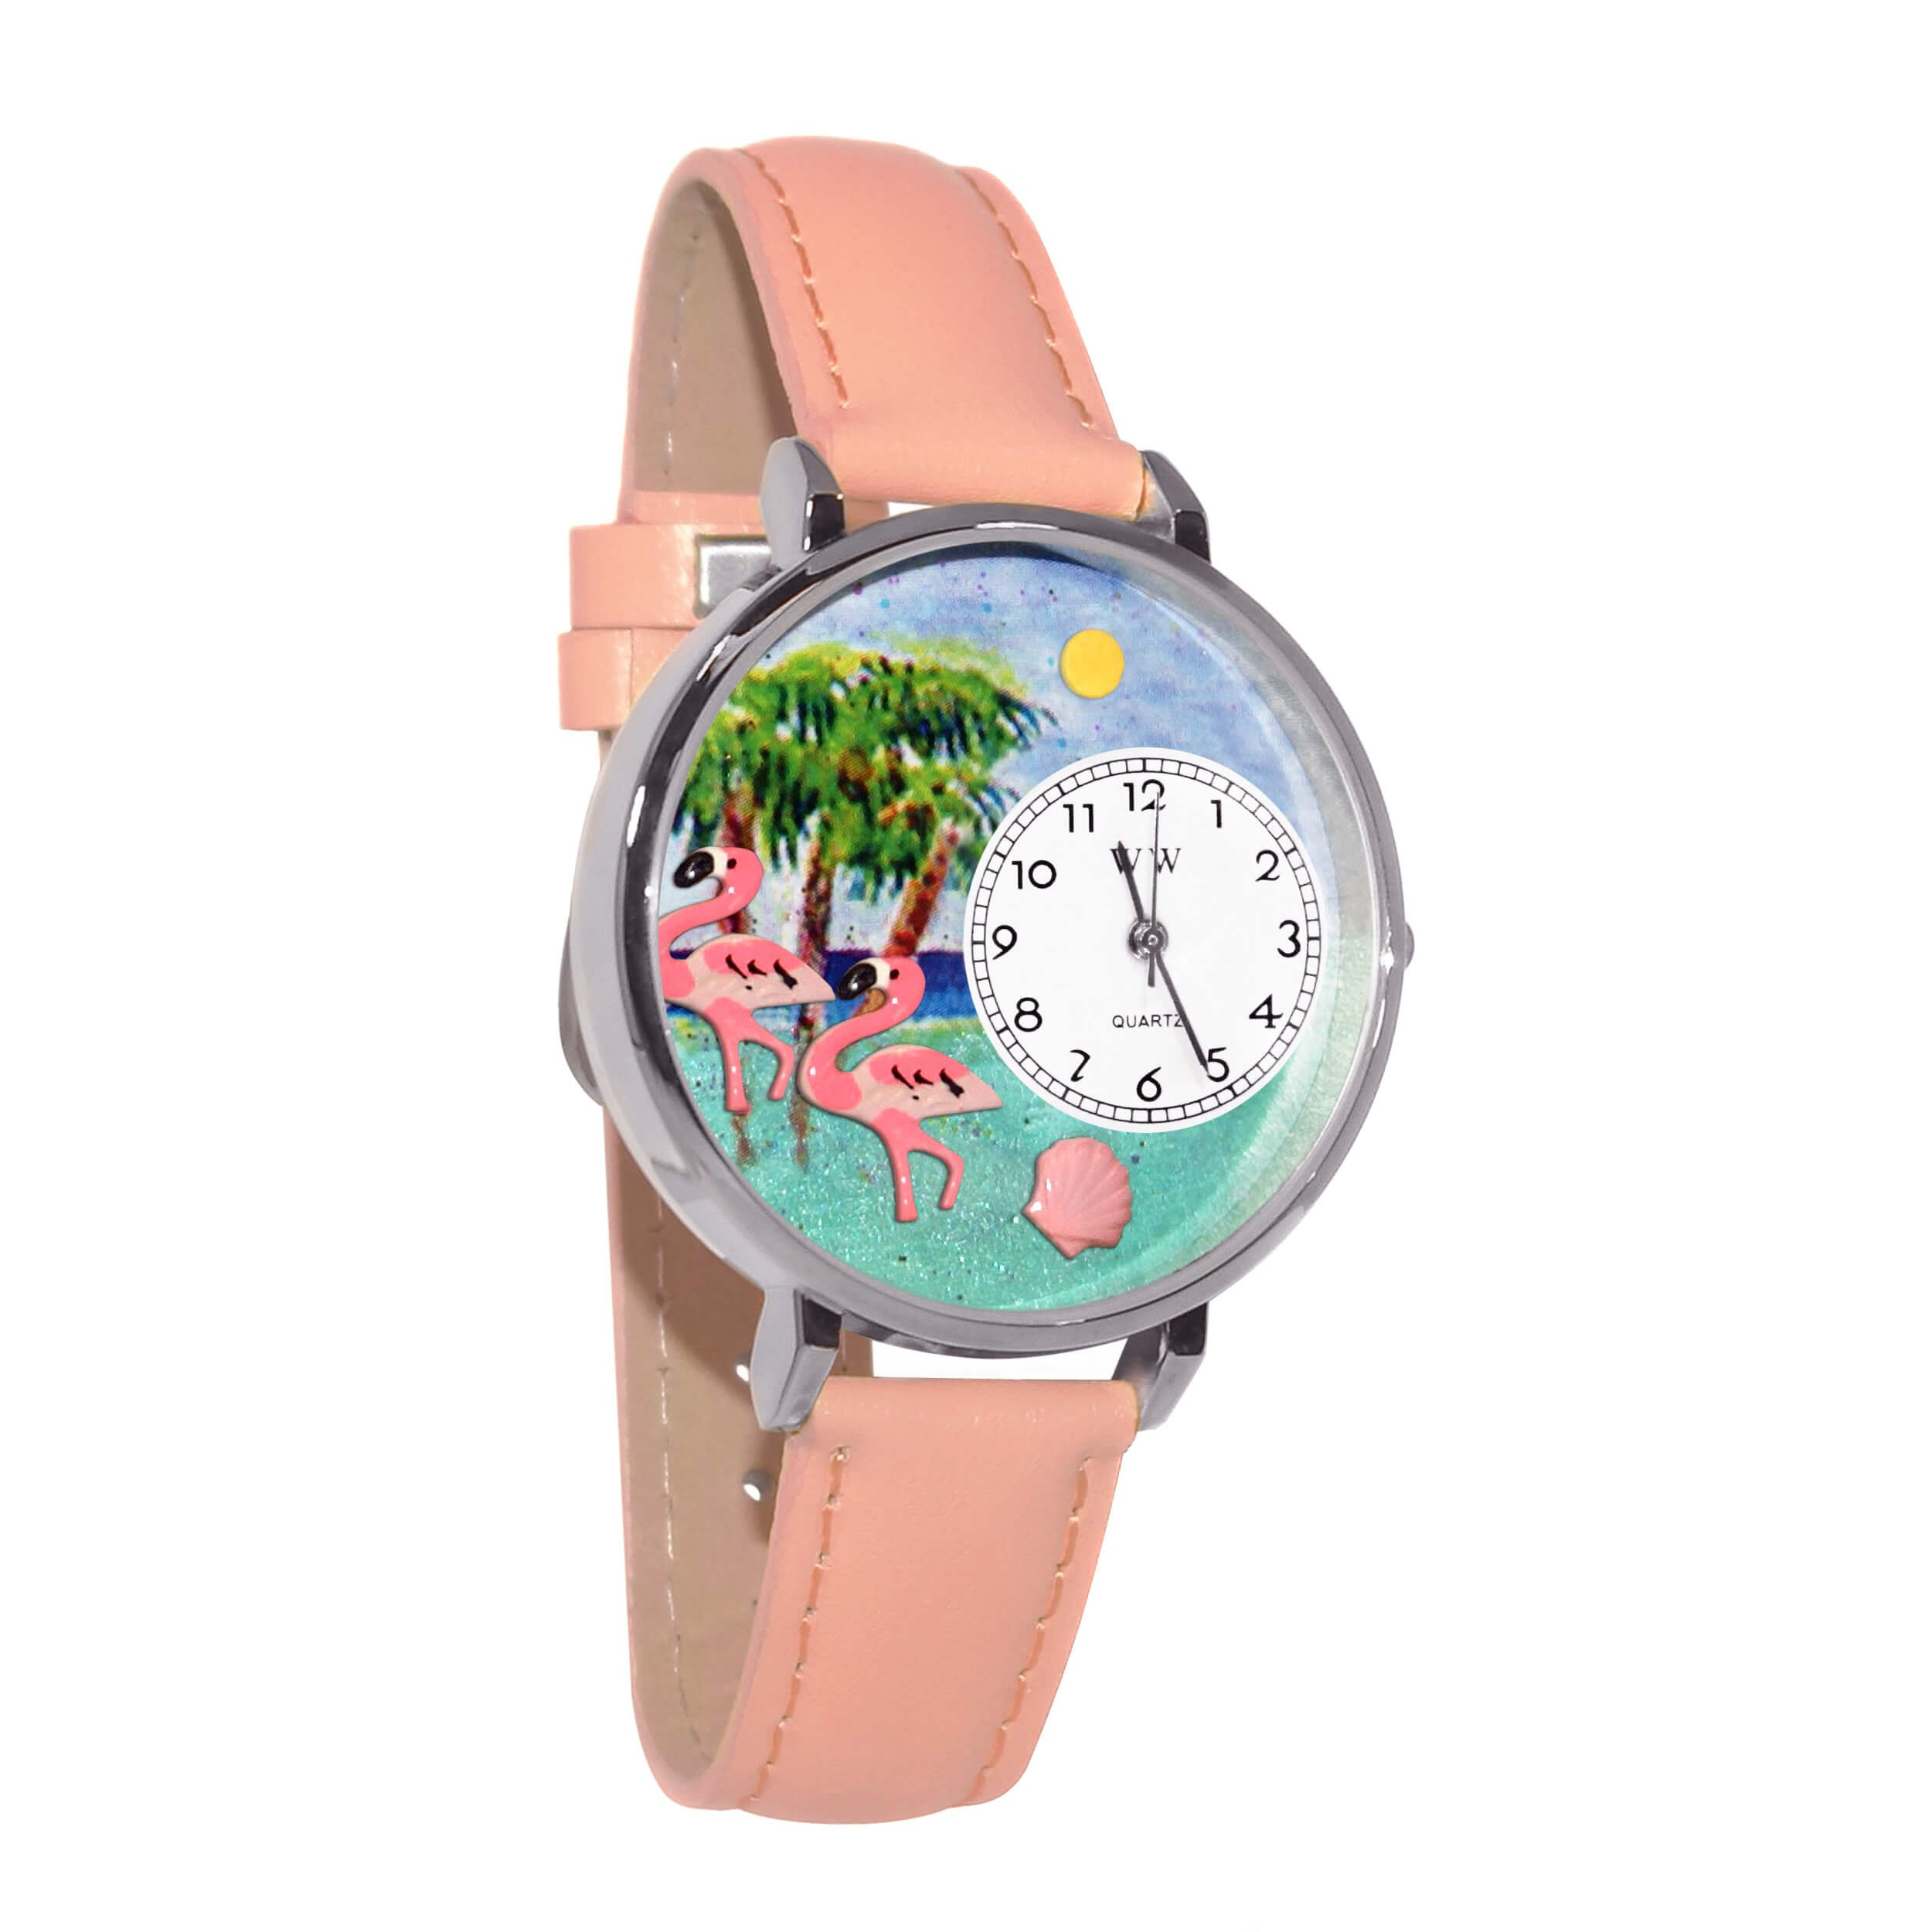 Whimsical Watches Unisex U0150001 Flamingo Pink Leather Watch